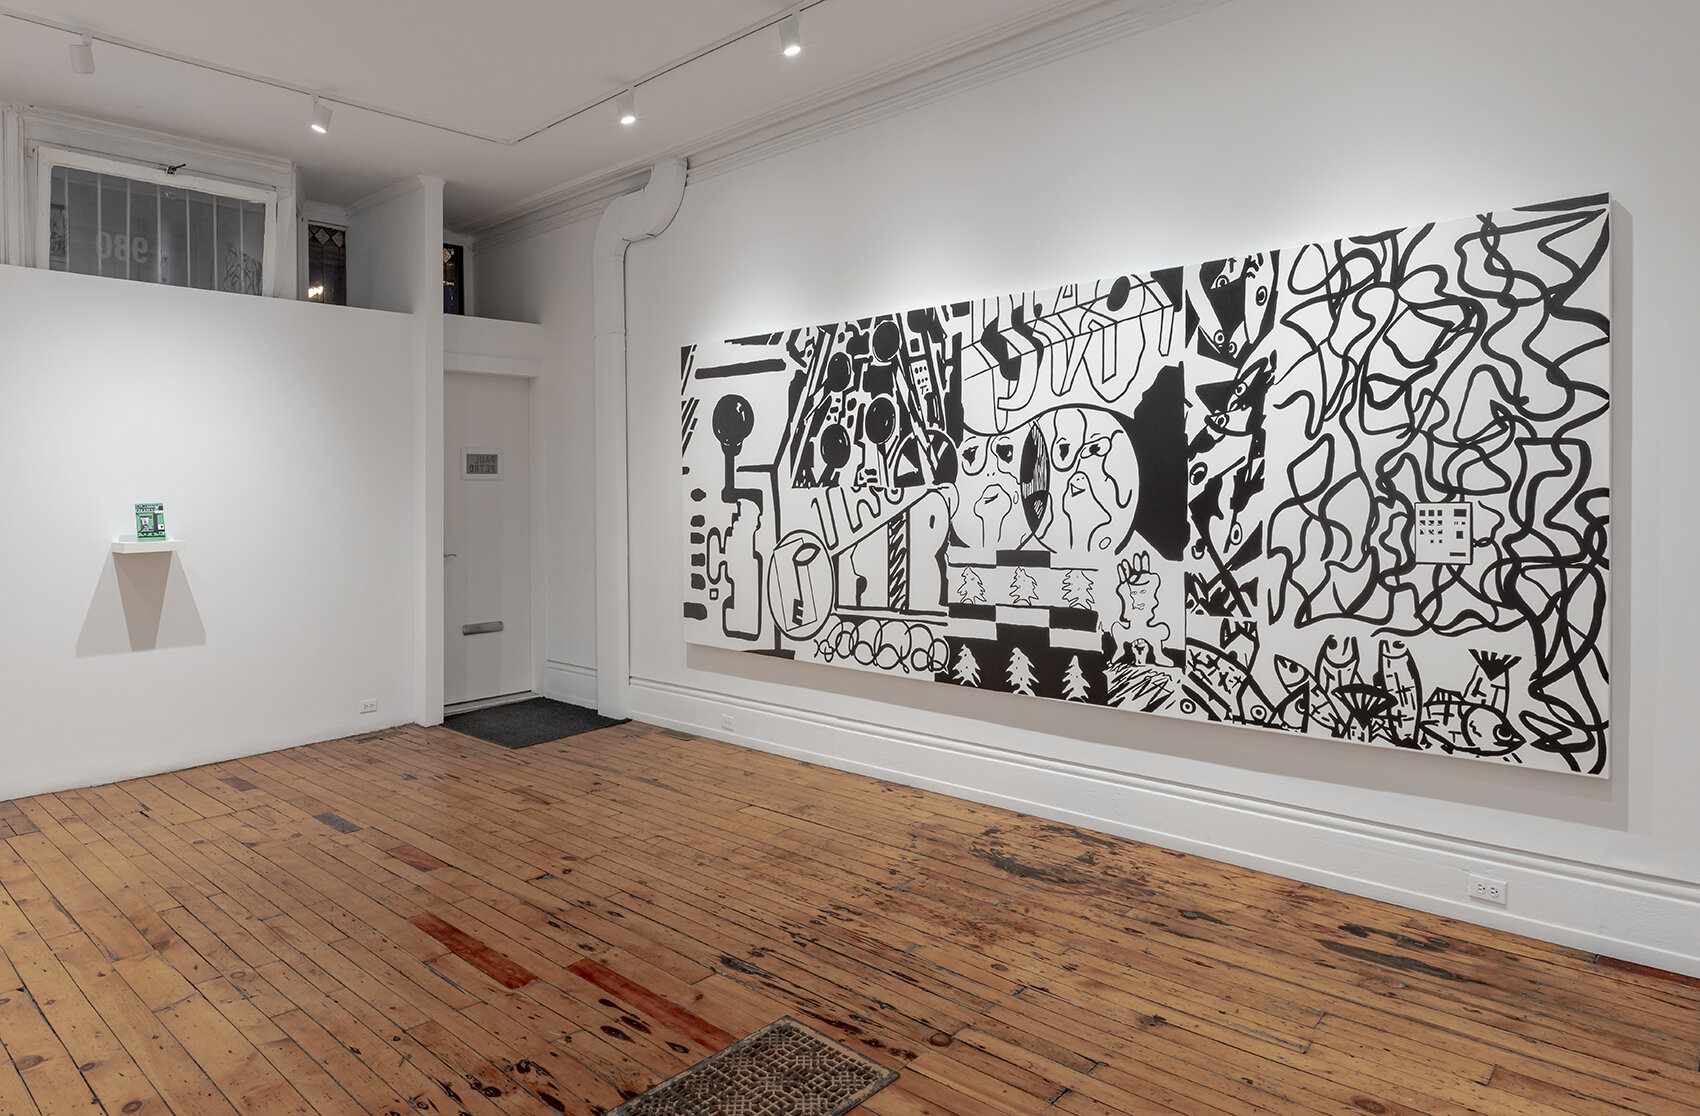 Isaac Midnight Repairs 2019 installation view 12  Low Res.jpg